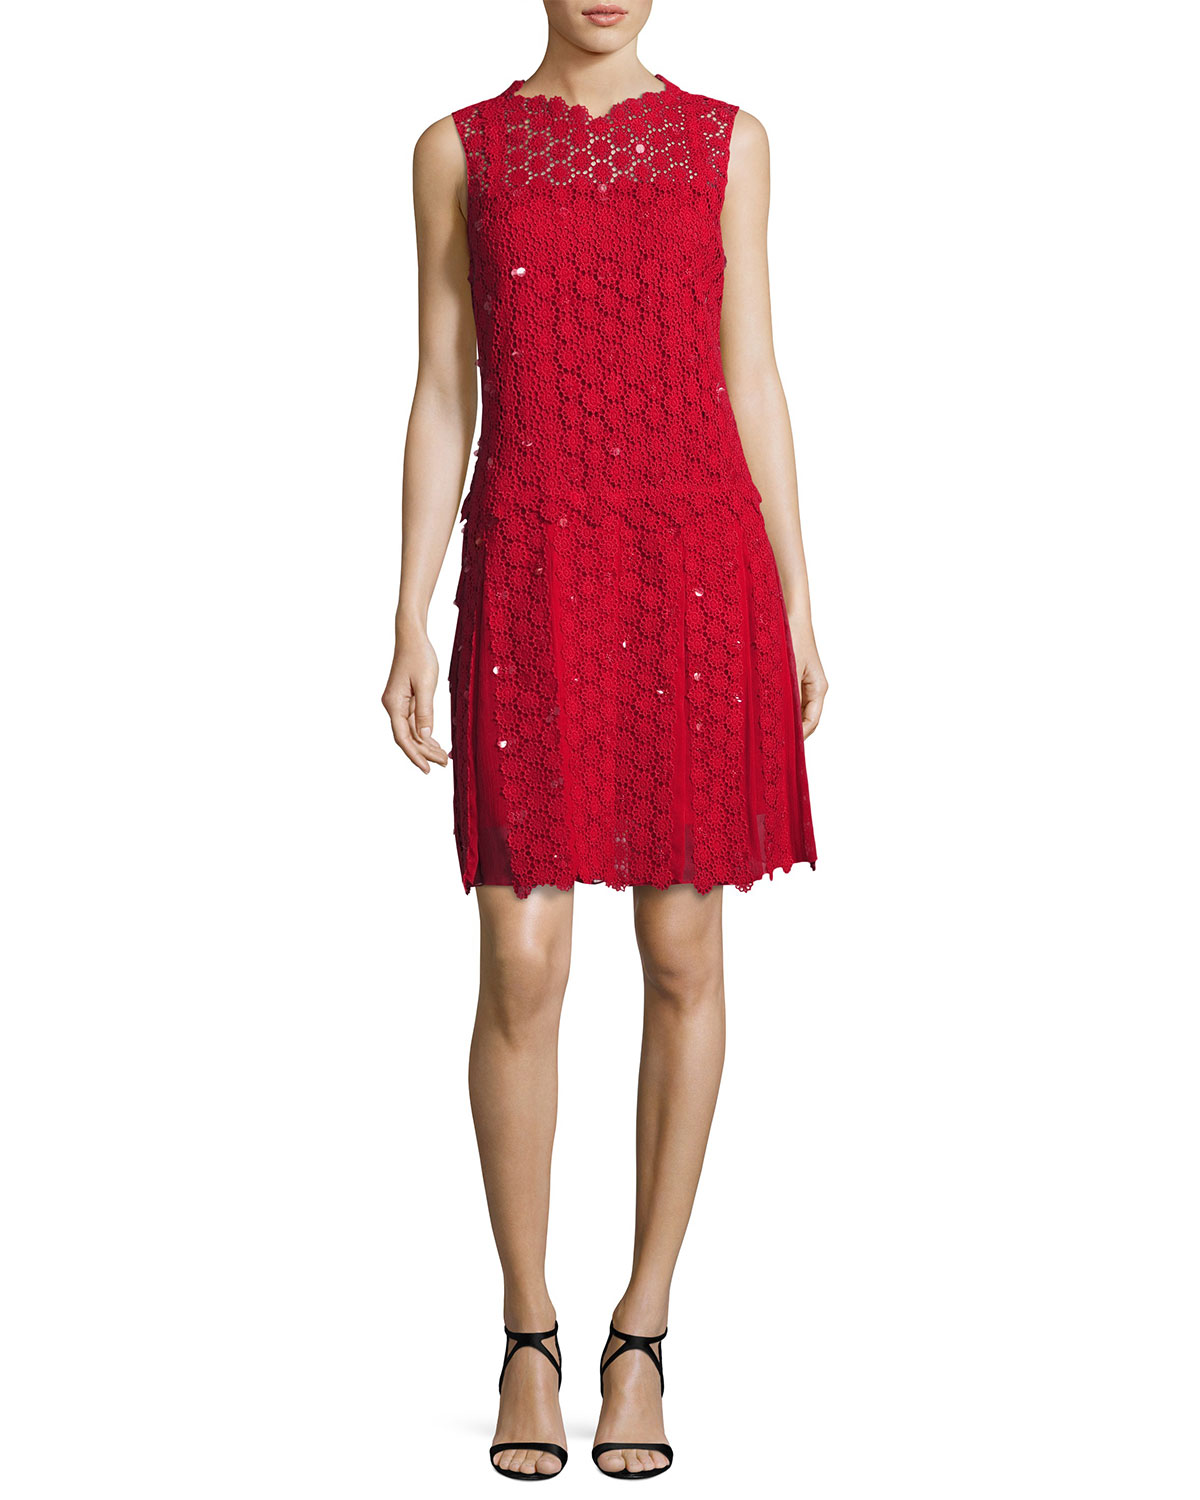 Bella Sleeveless Pleated Crocheted Dress, Red